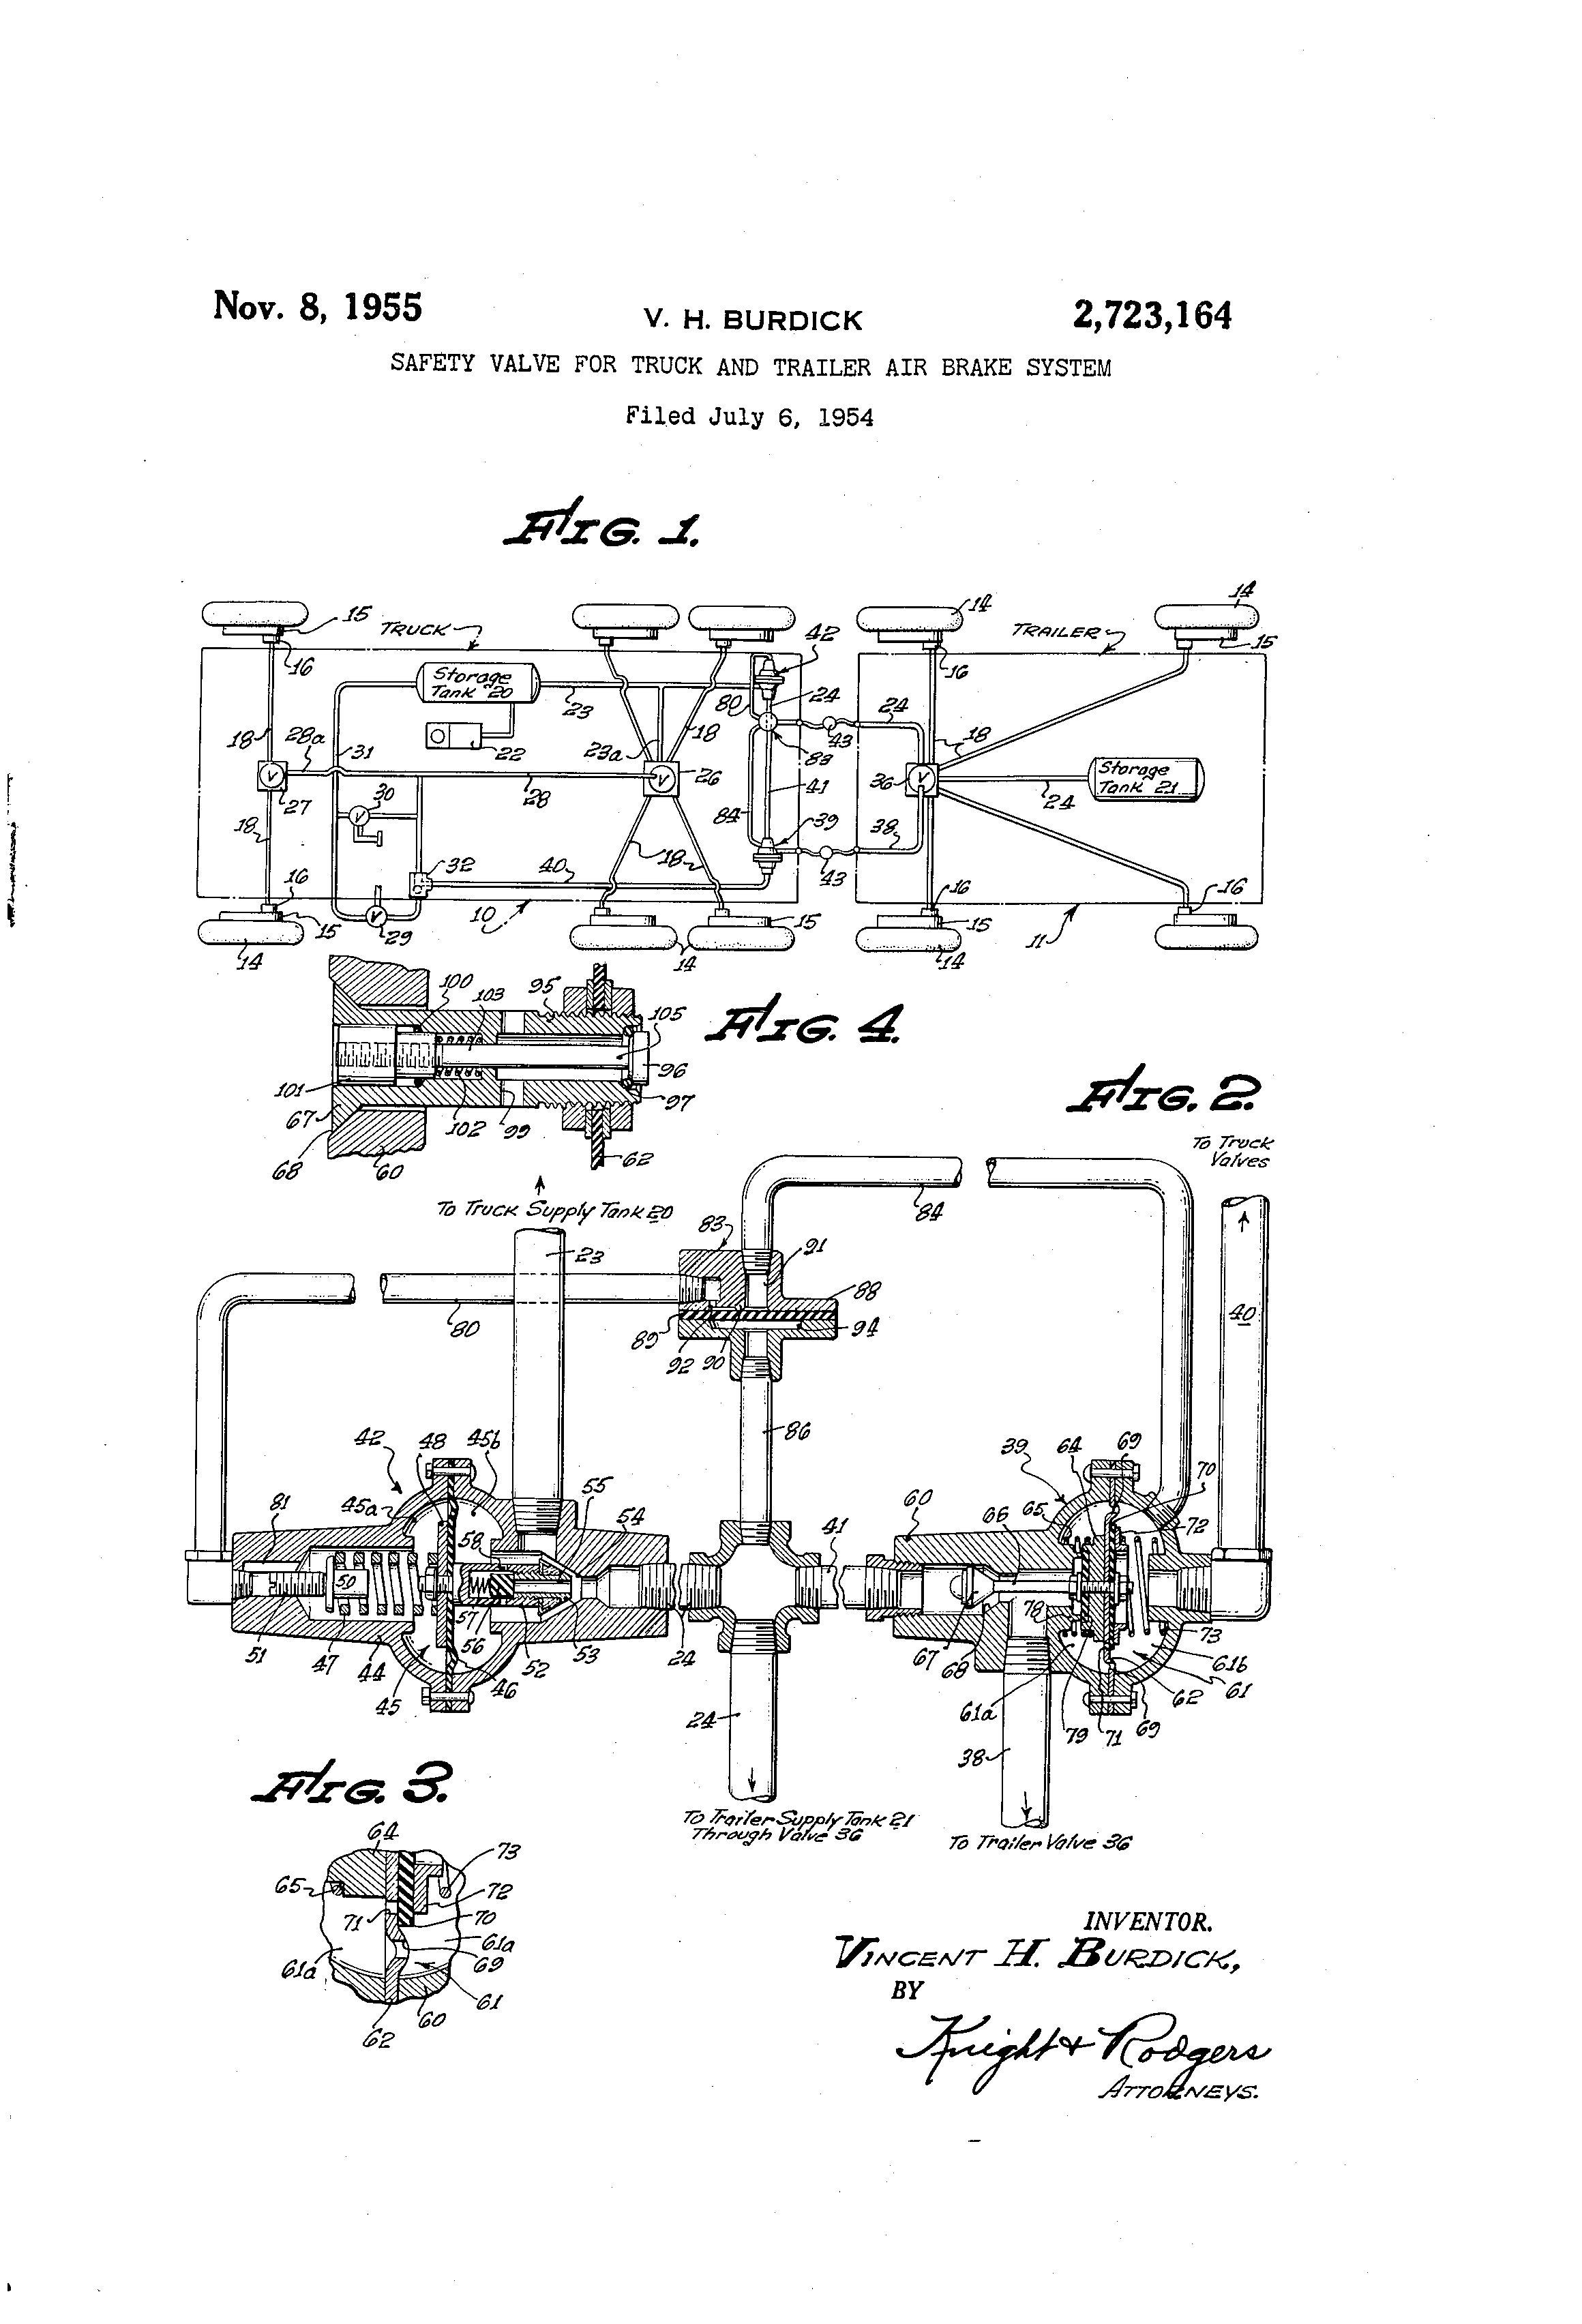 Patent US2723164 - Safety valve for truck and trailer air